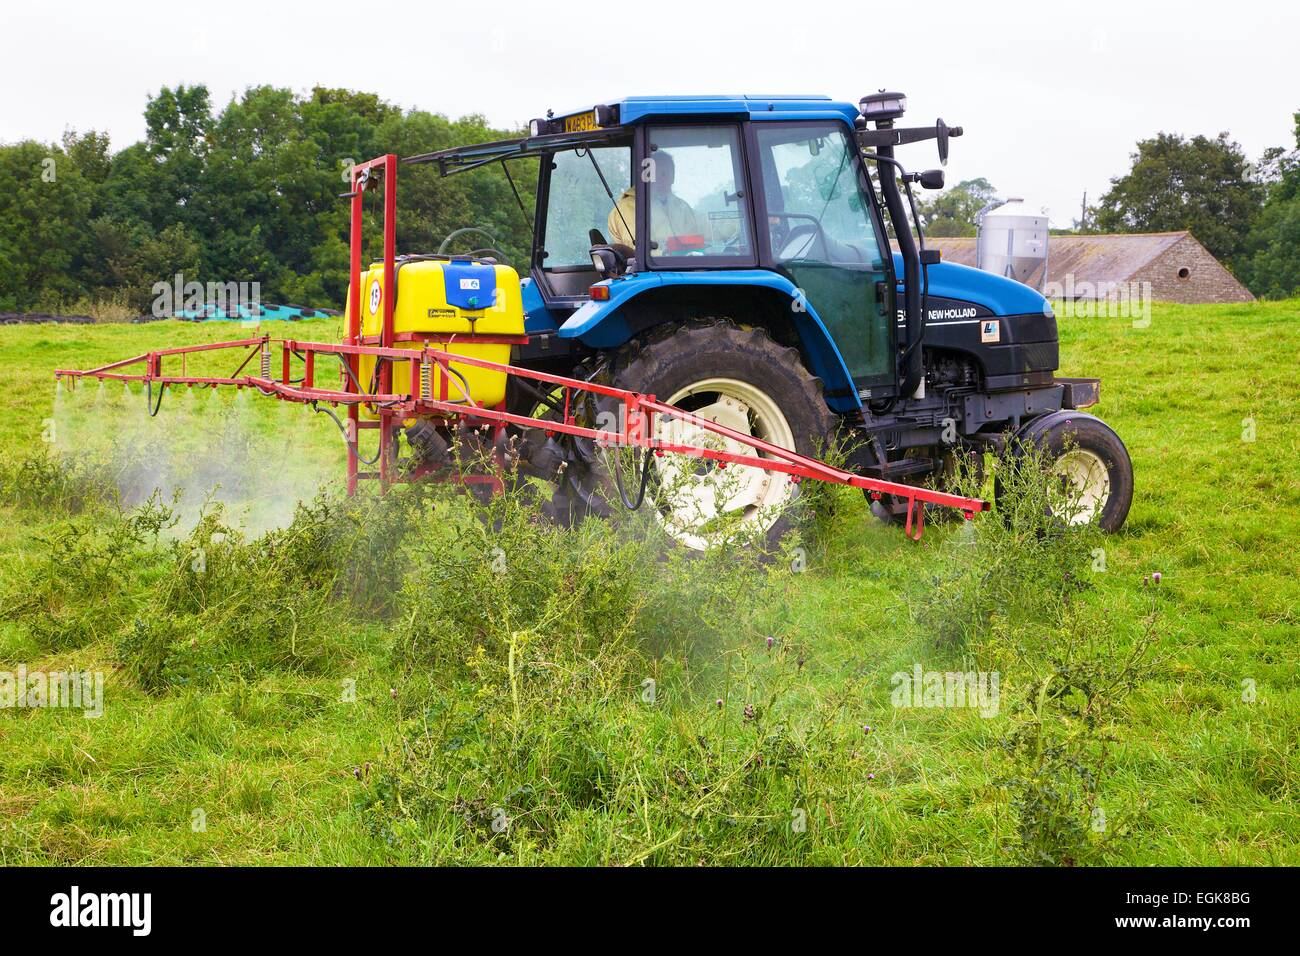 T90 New Holland Tractor with sprayer, spraying thistles. - Stock Image